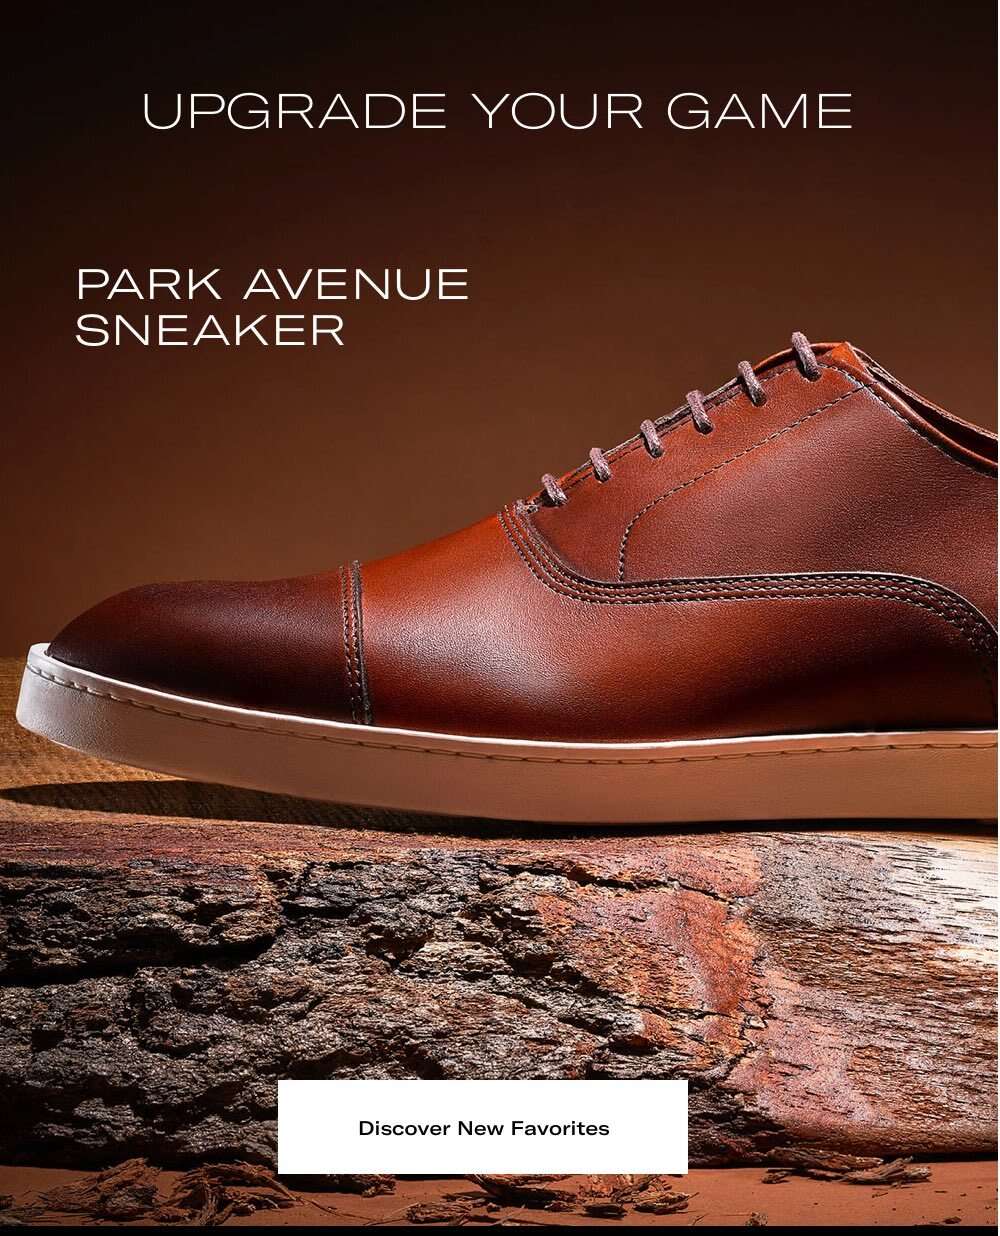 Upgrade your game, Park Avenue sneaker. Discover new favorites.